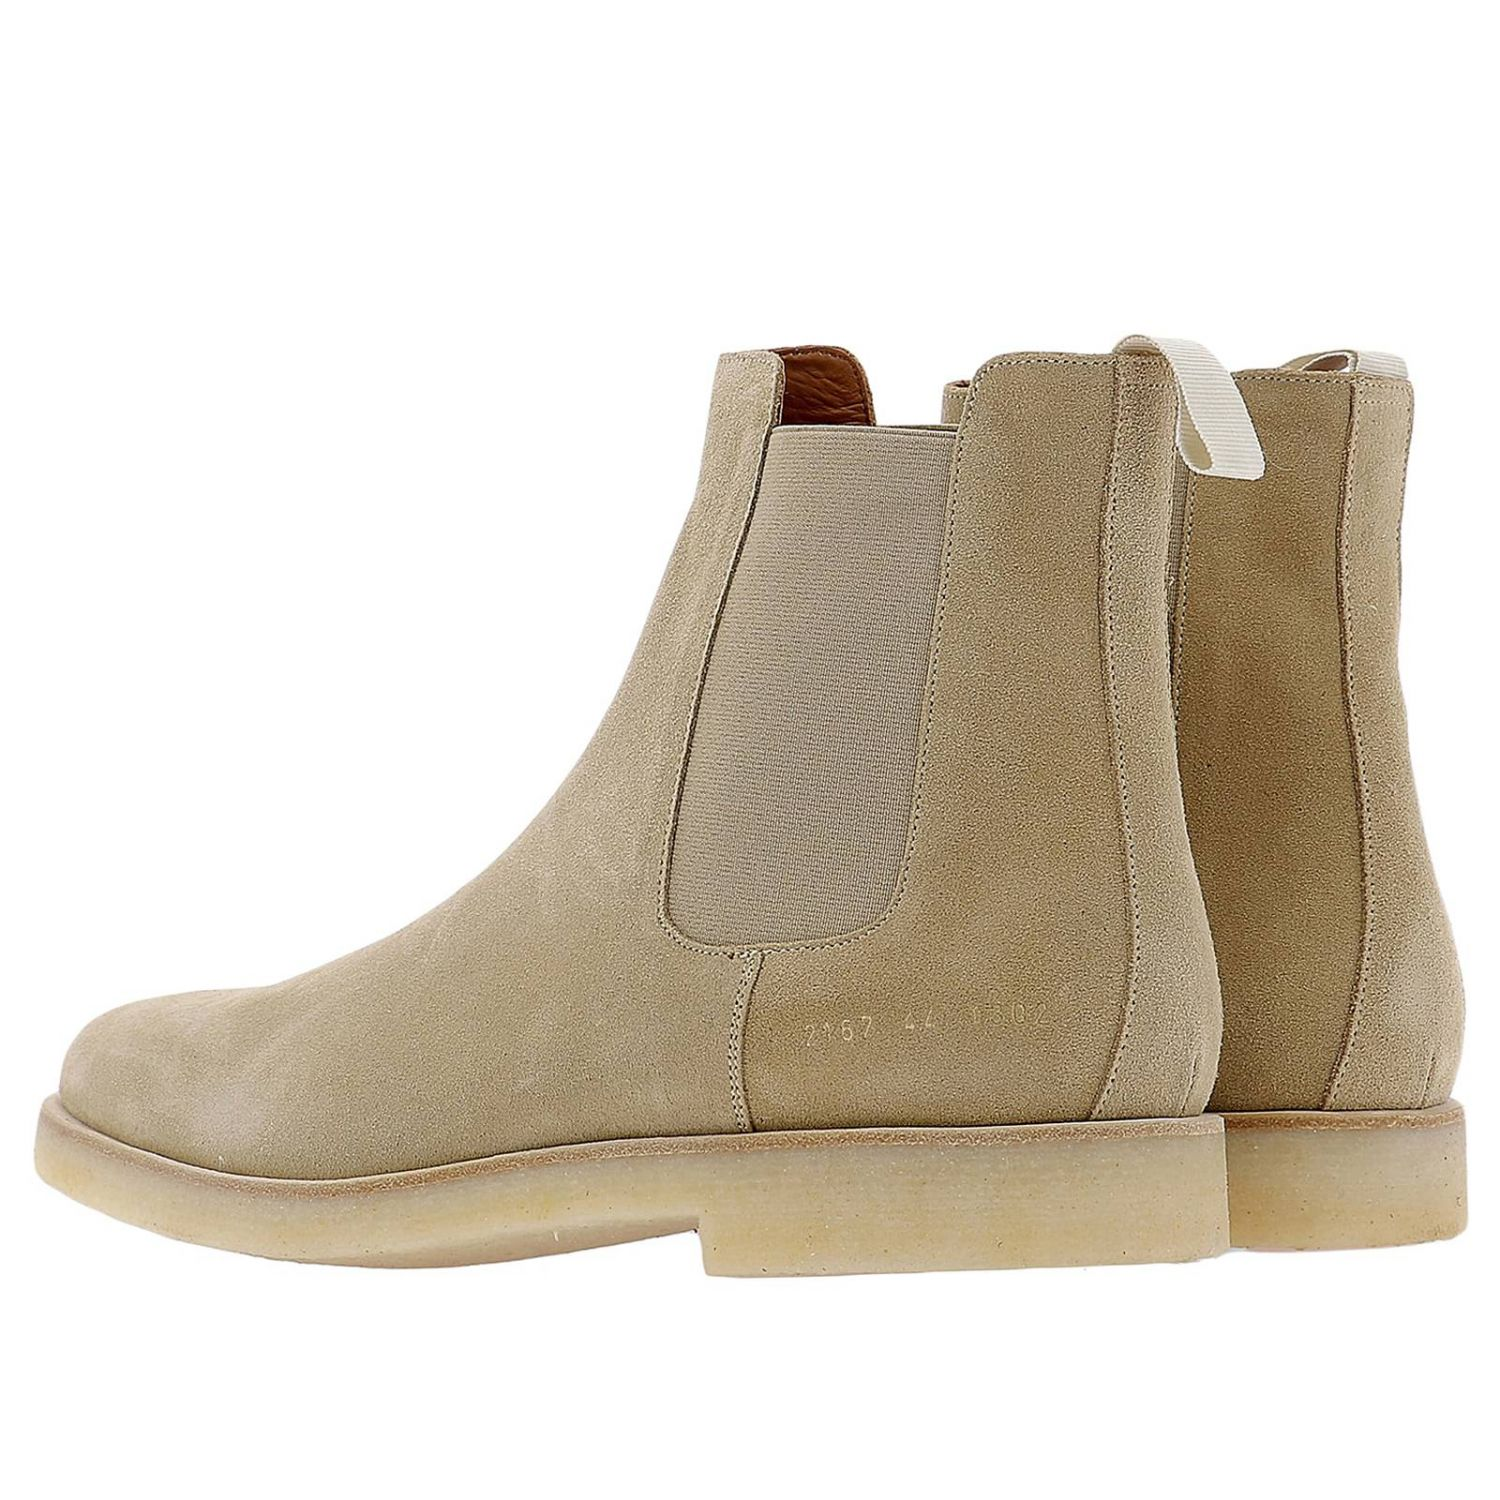 Zapatos hombre Common Projects beige 3